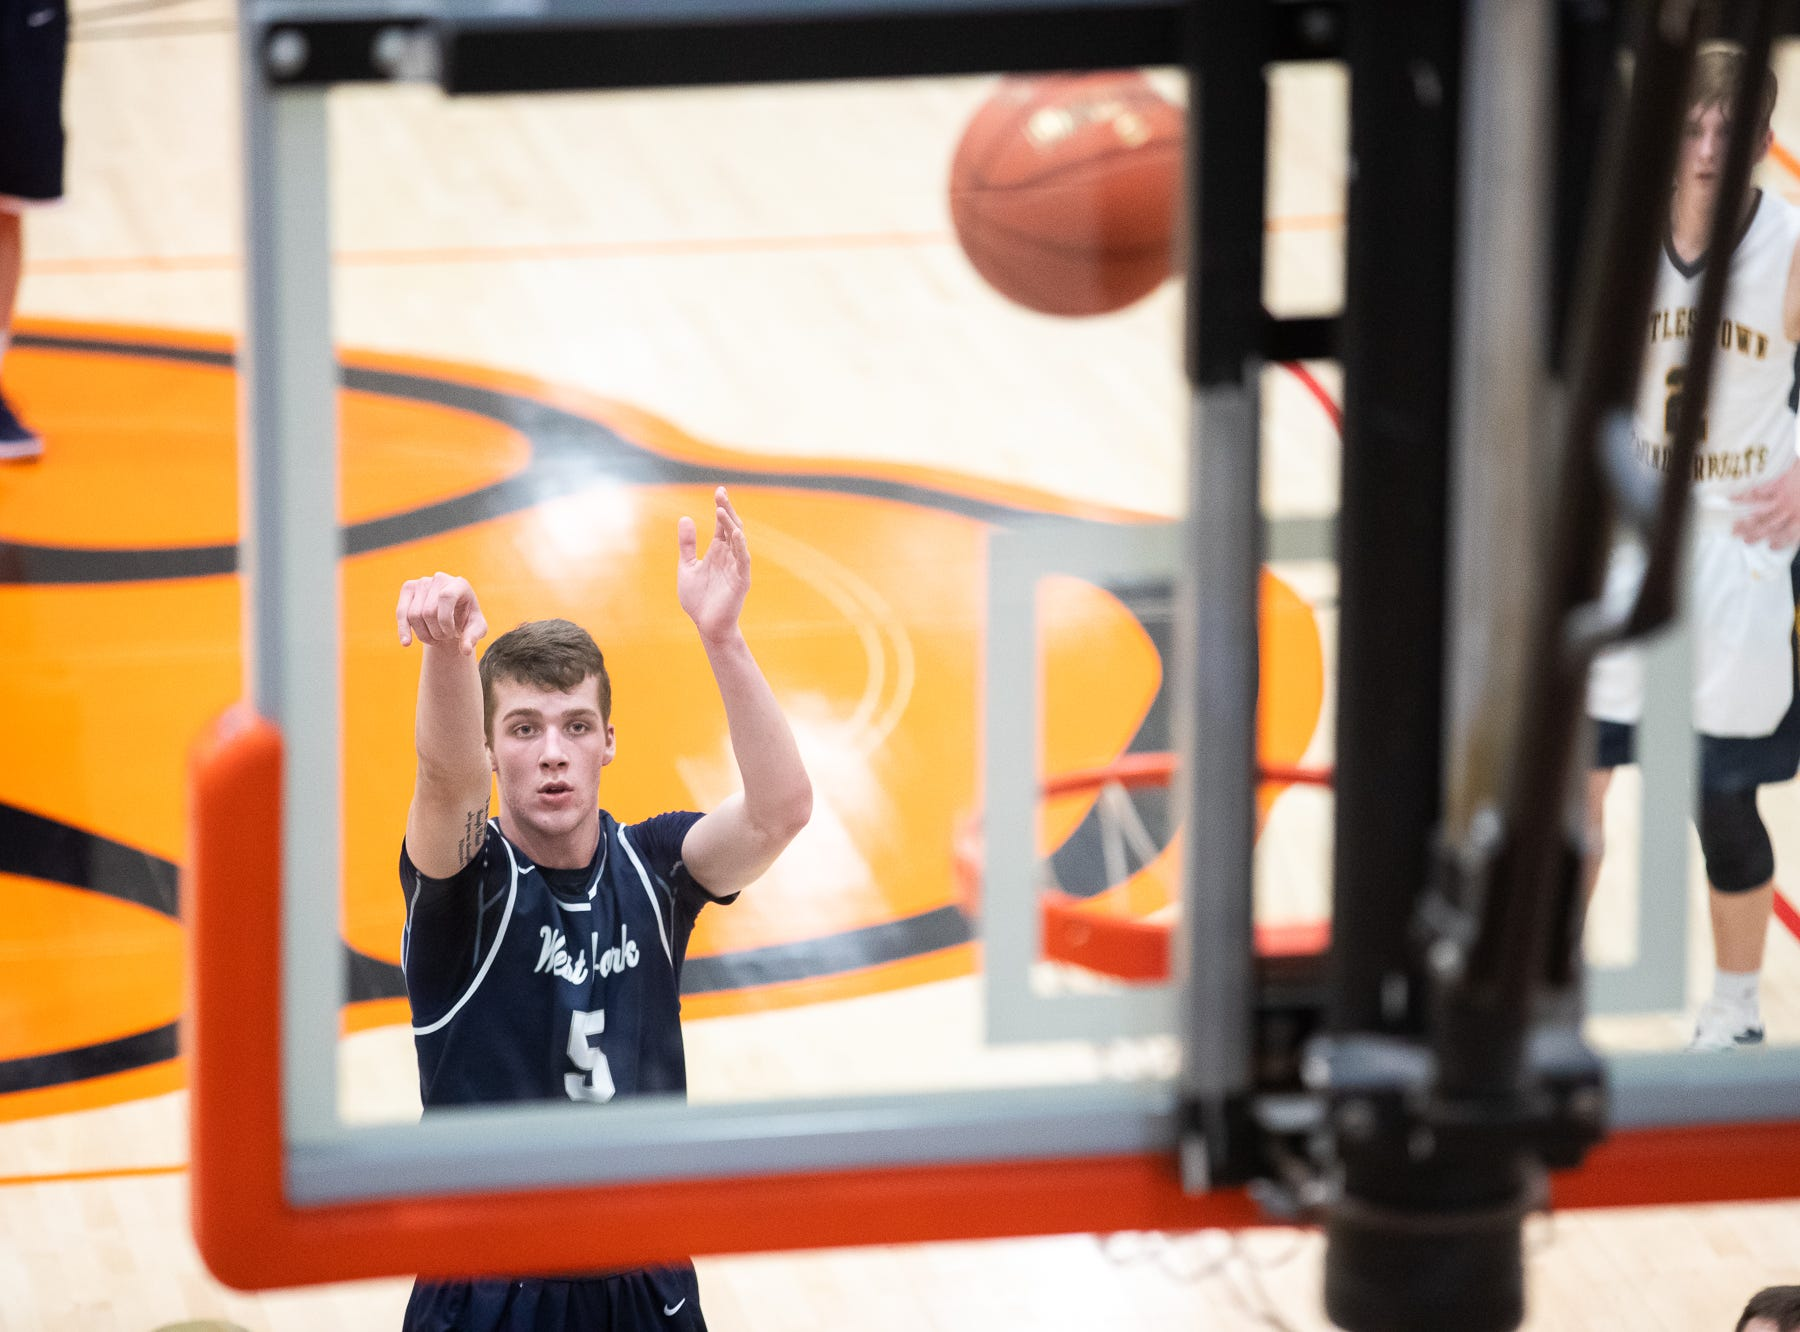 West York's Andrew LaManna (5) shoots a free throw during the first half of the YAIAA boys' basketball quarterfinals between Littlestown and West York, Saturday, Feb. 9, 2019, at Central York High School. West York led Littlestown 33-31 at the half.